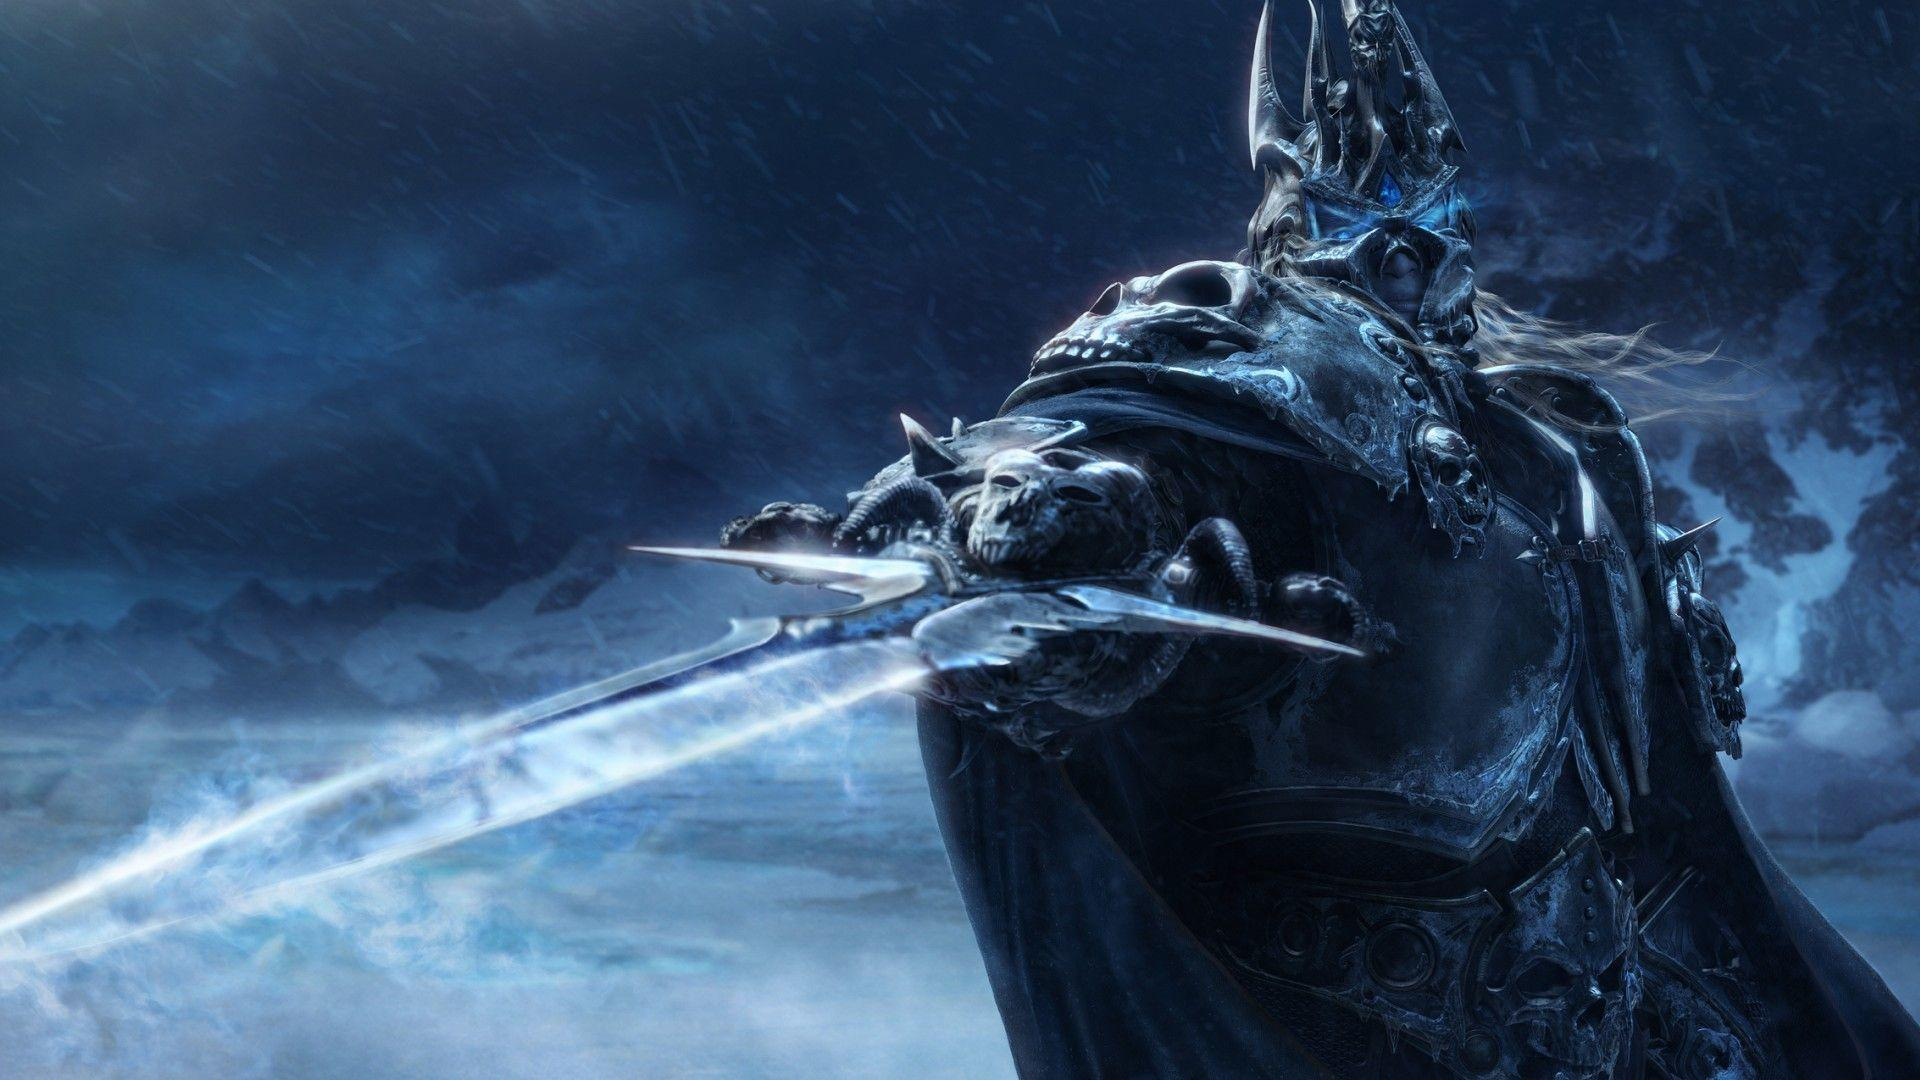 Lich King Sword (9755) - Download Game Wallpapers HD Widescreen